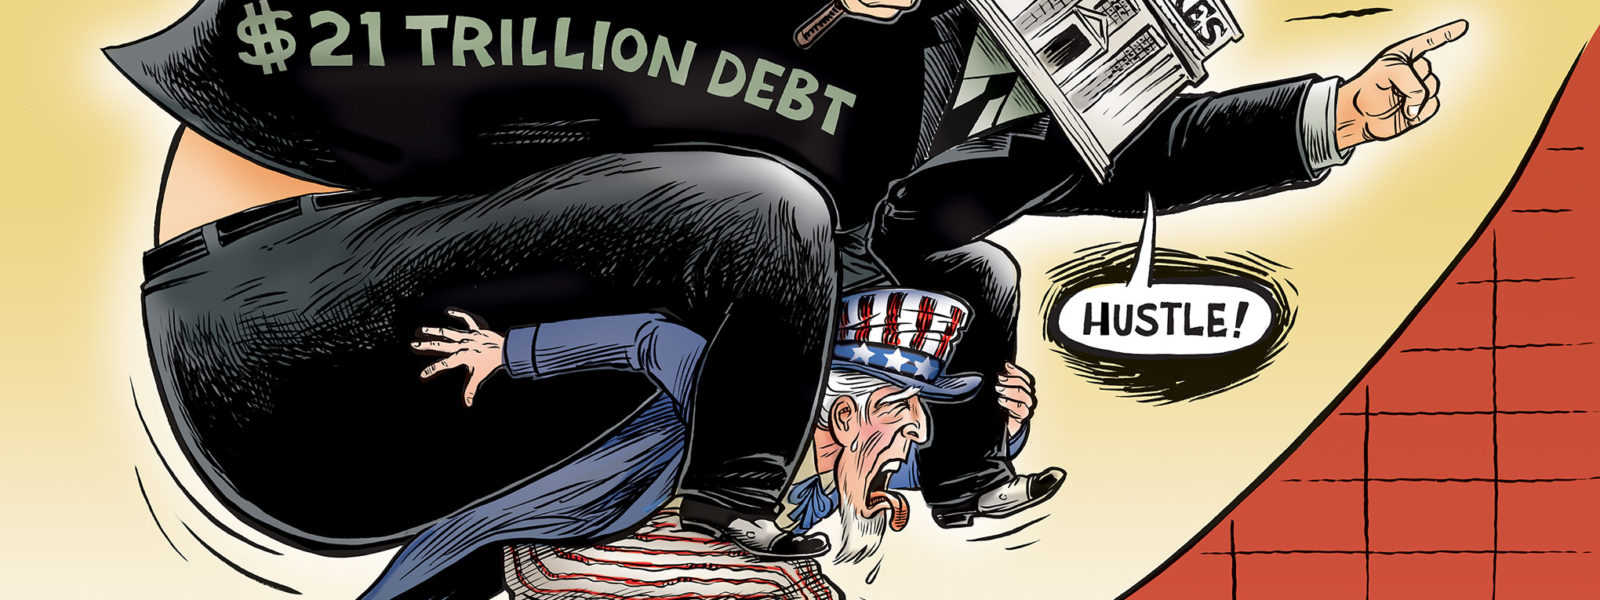 The USA's Debt Burden